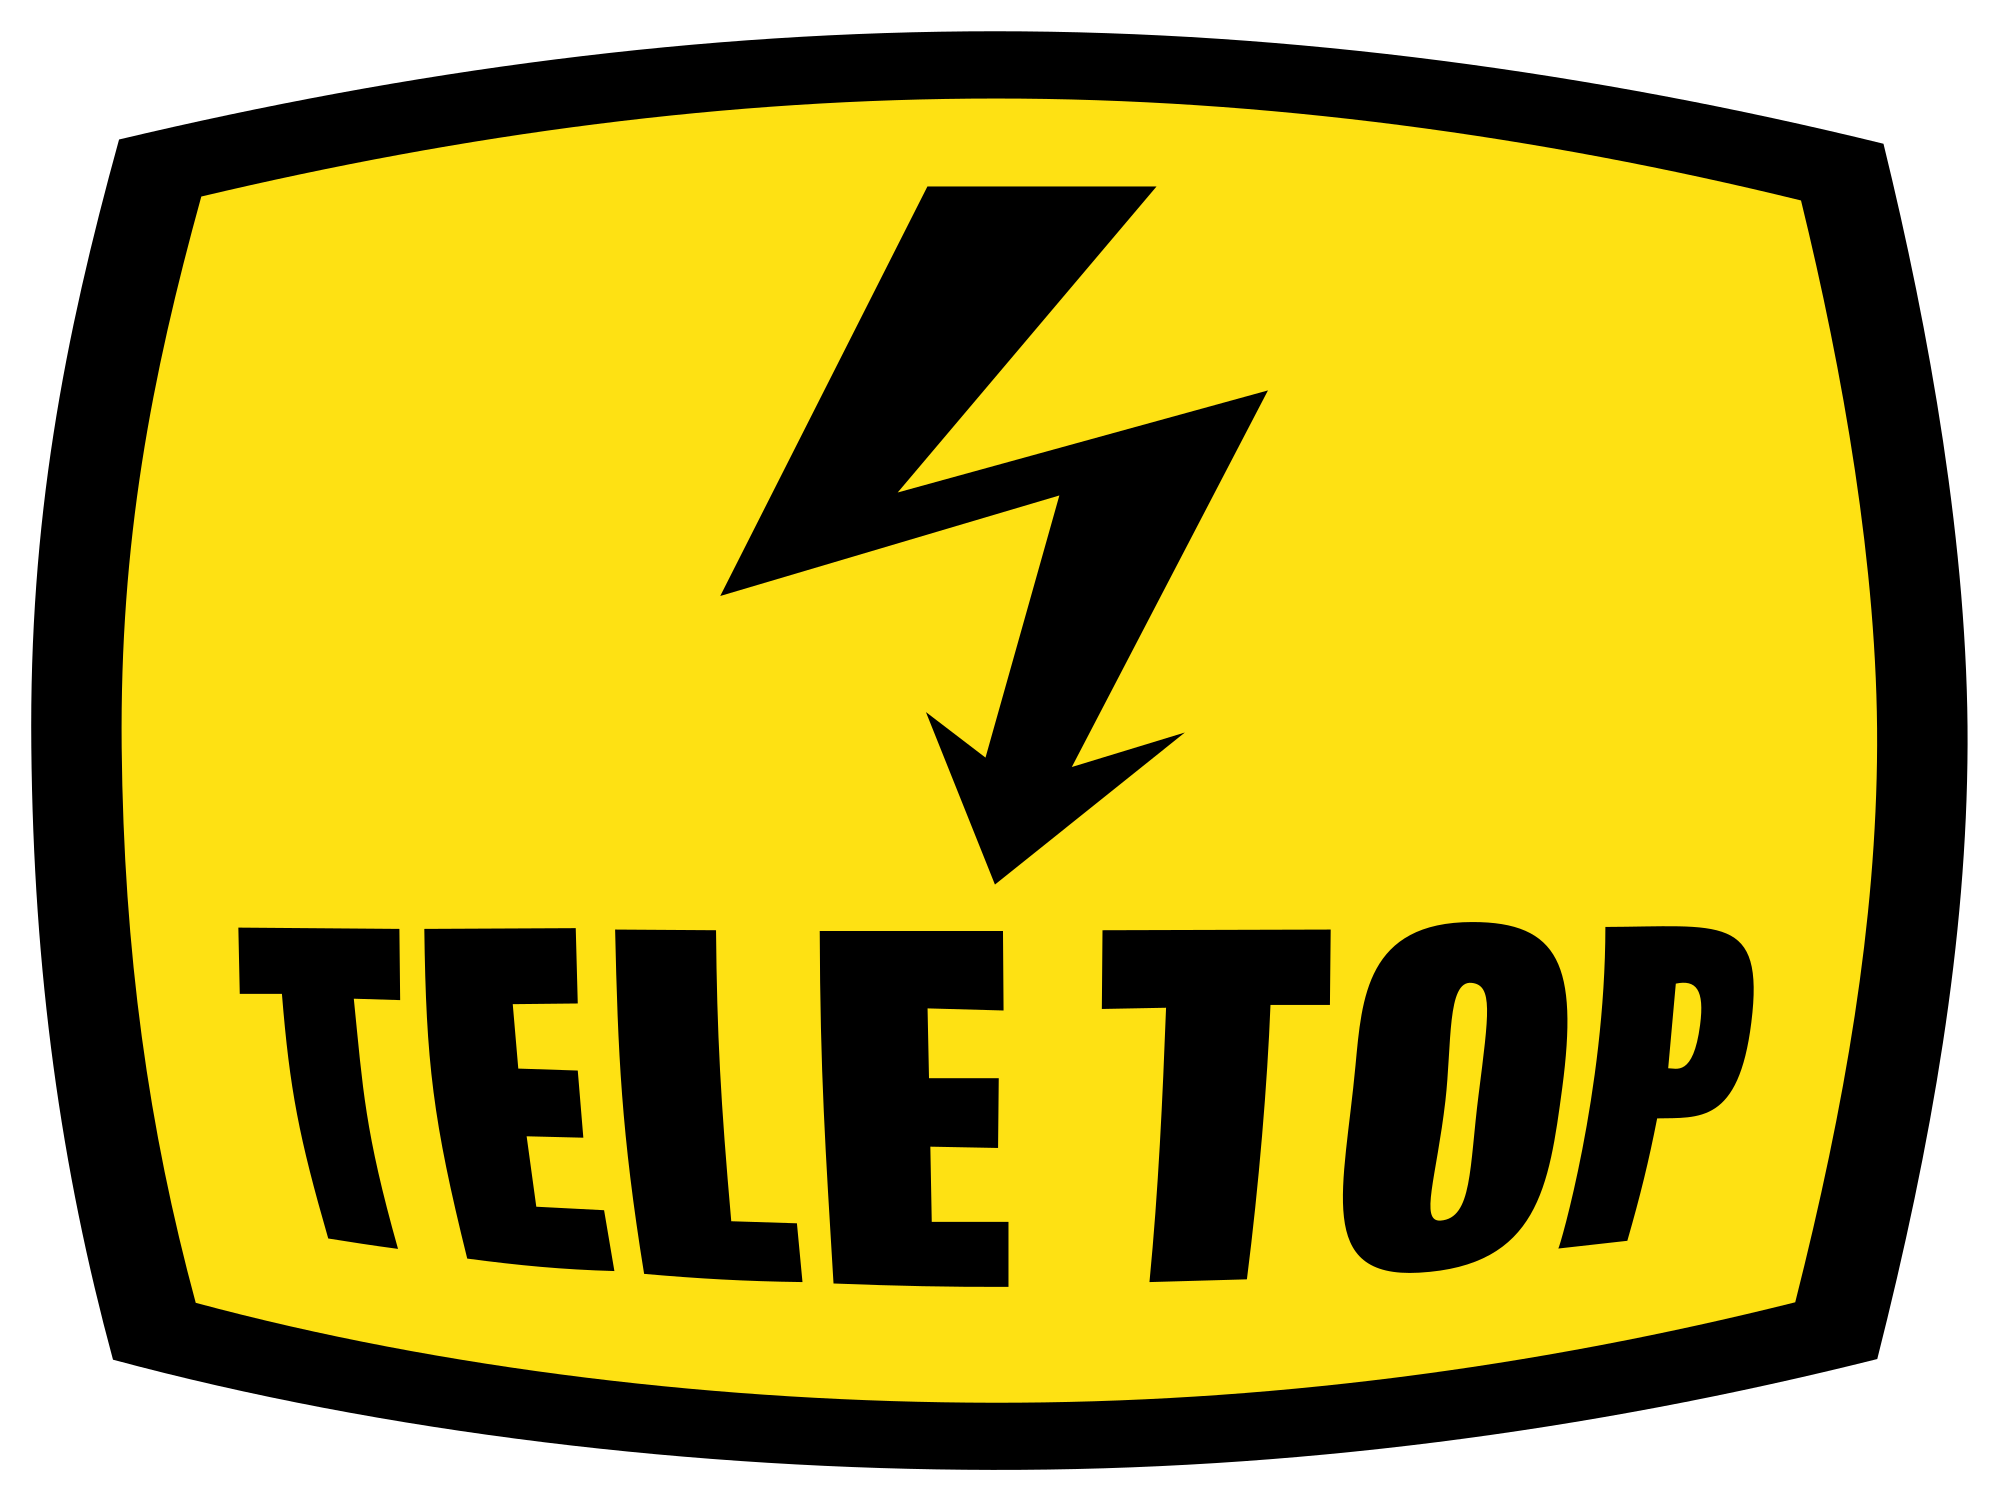 xdd customer Tele Top